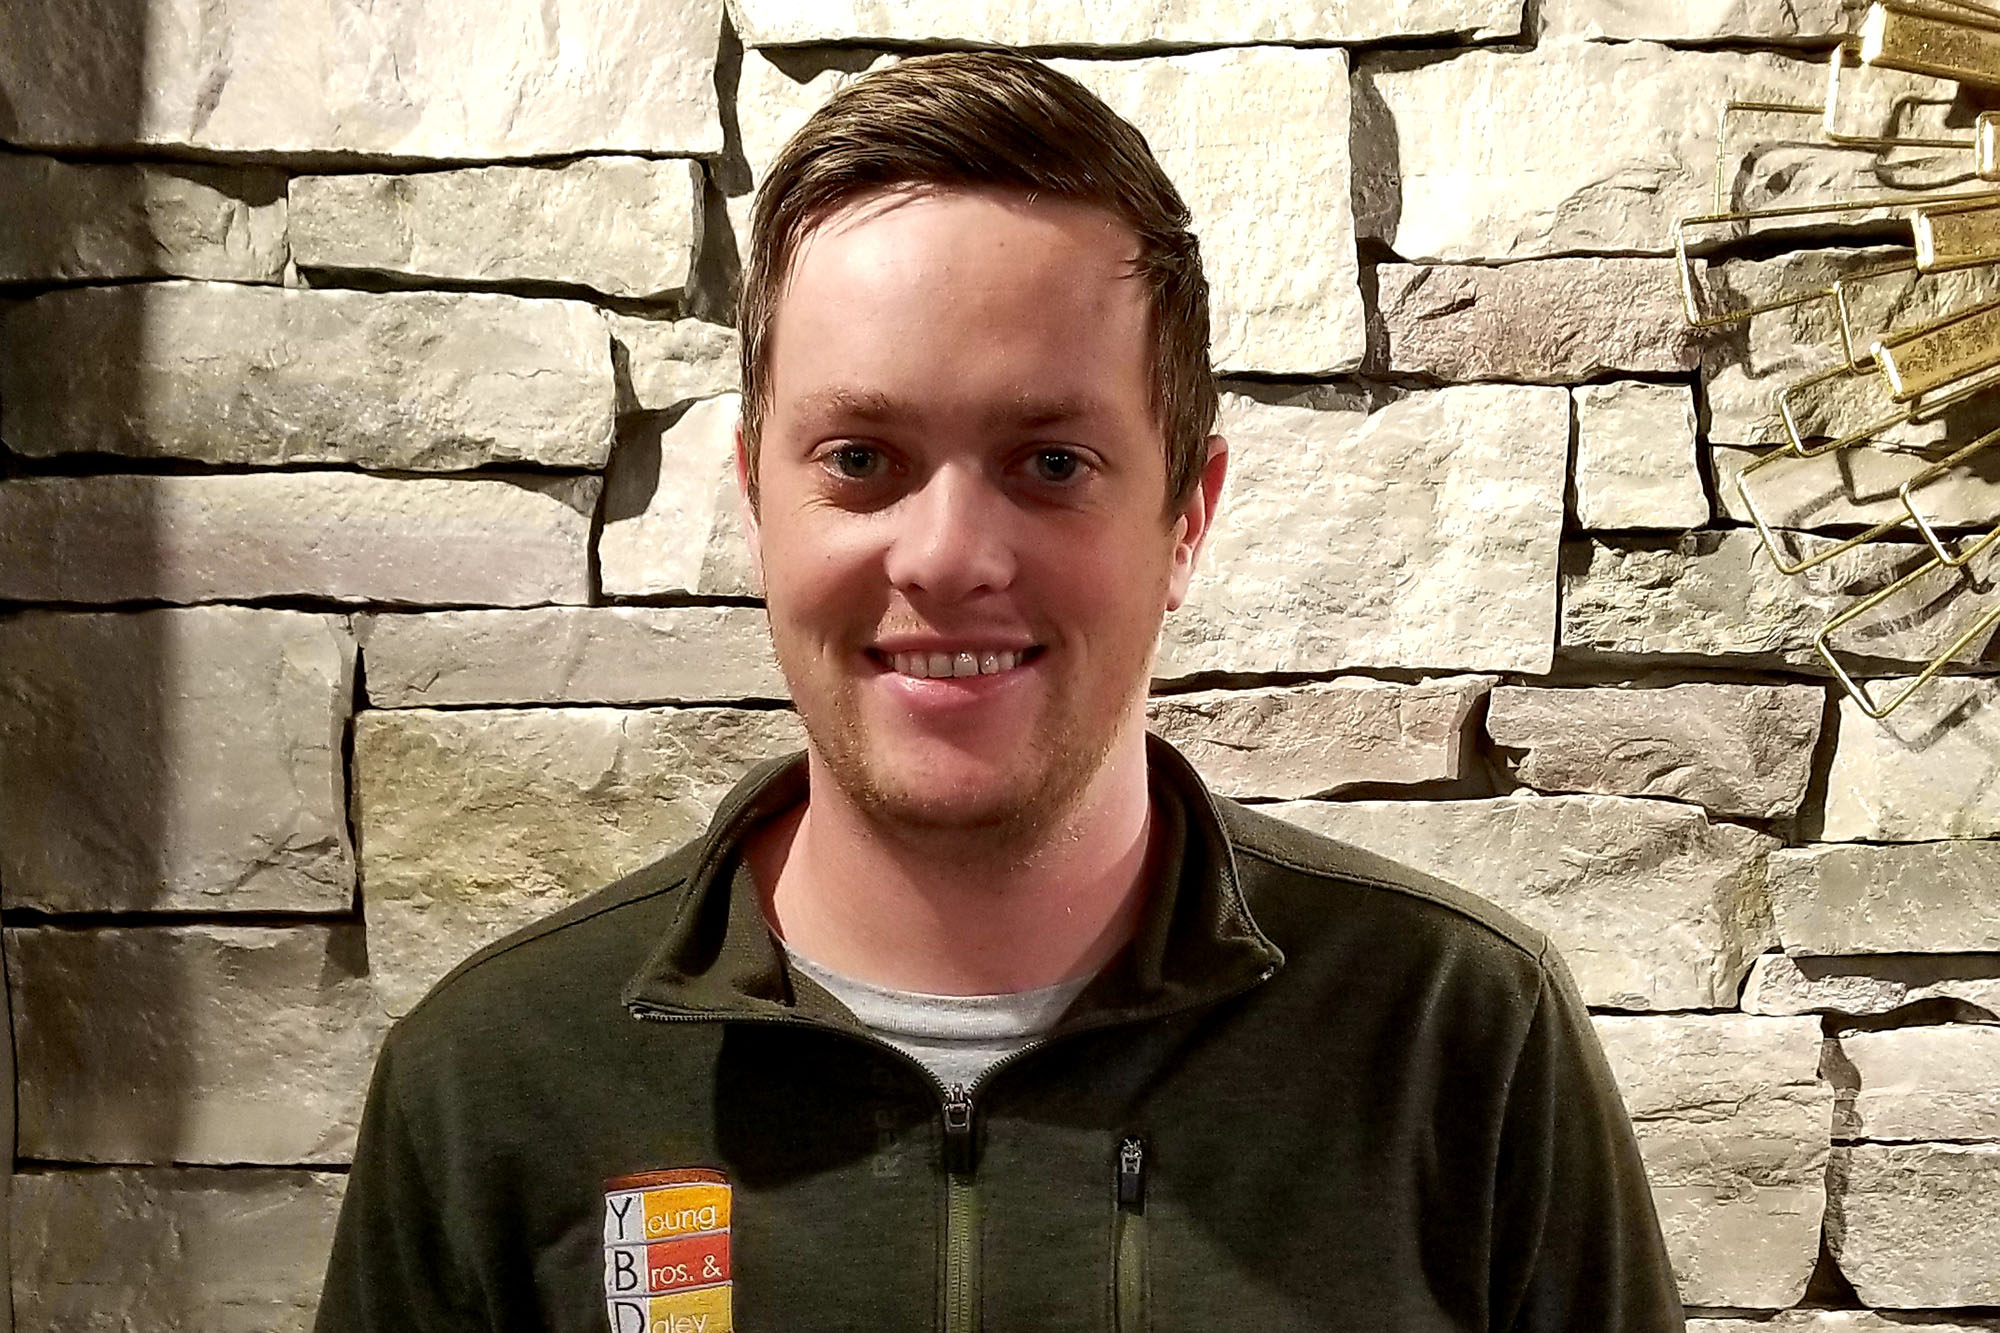 landscape supply store employee with YBD shirt on